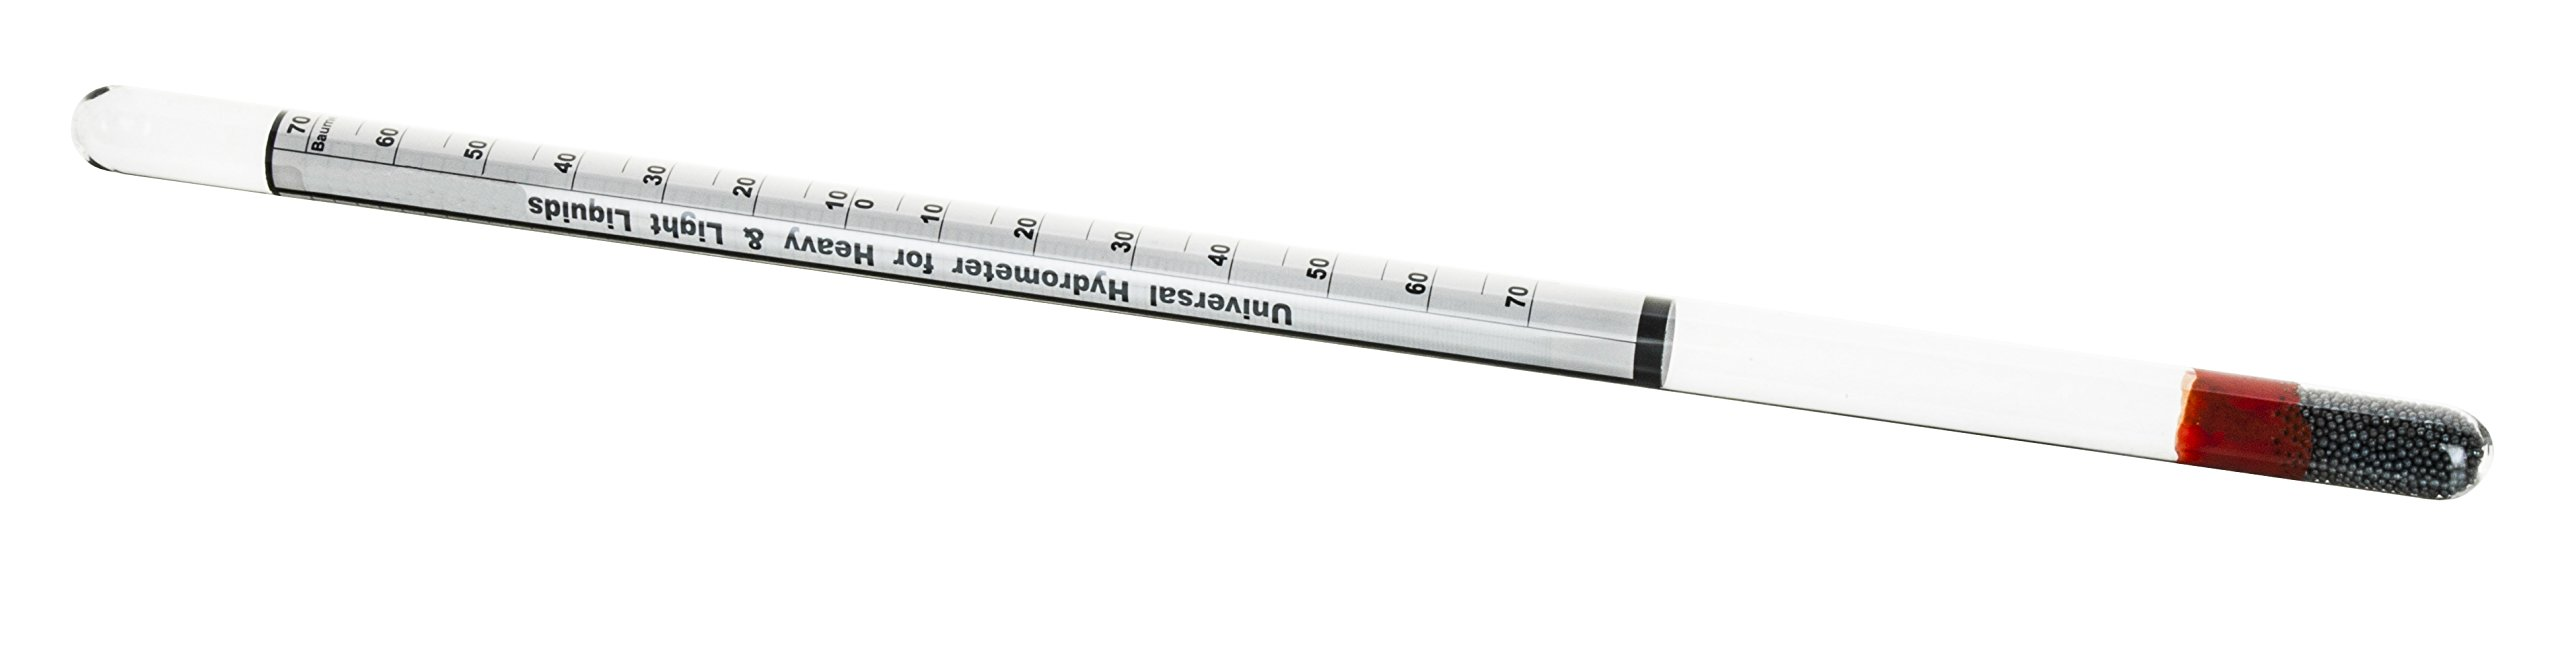 Universal Laboratory Hydrometer in Hard Plastic Case- Measure Specific Gravity Range 0.700 to 2.000 - 0.01 Graduations - Dual Scale For Light and Heavy Liquids by EISCO